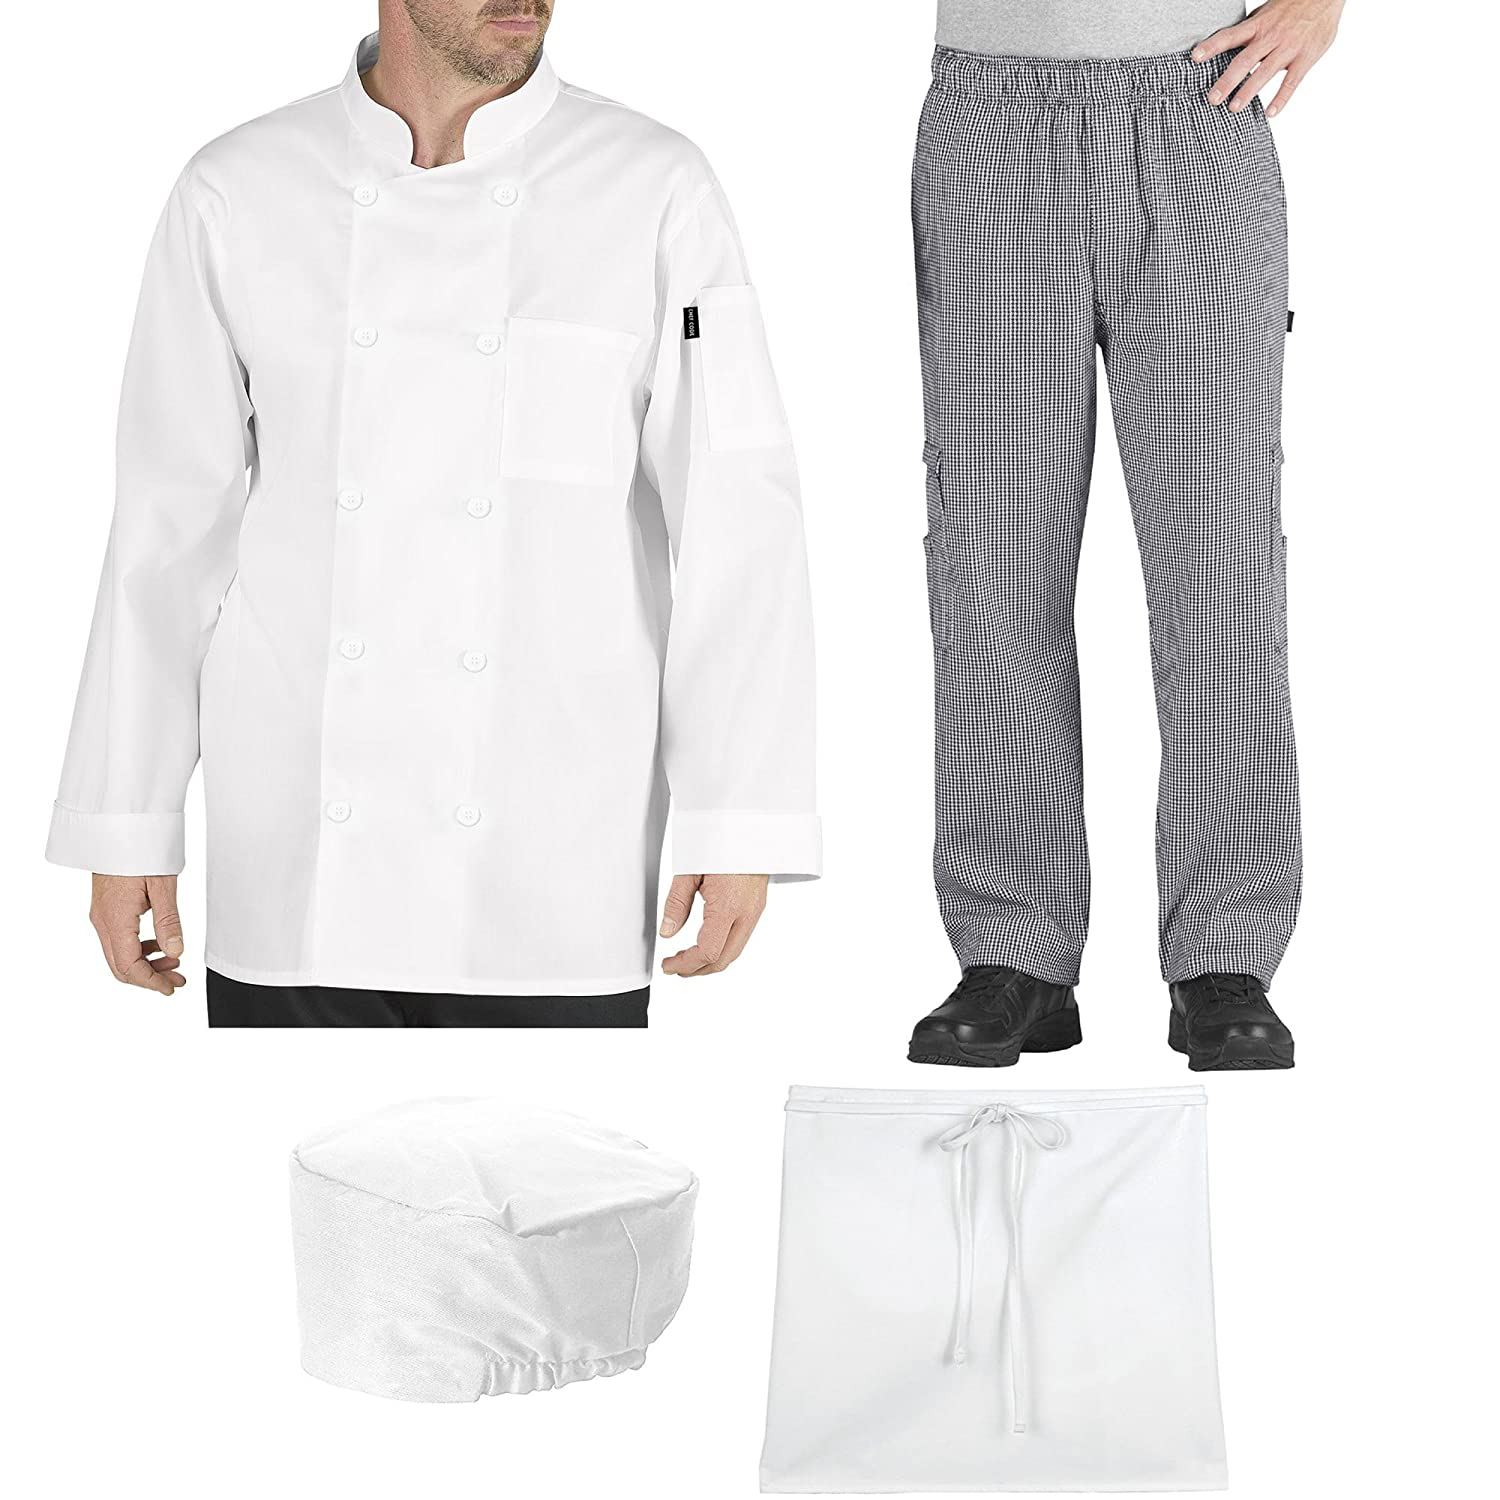 Chef Code Student Chef Bundle Pack Includes Chef Coat, Pants, Hat & Apron CC-PACK-A